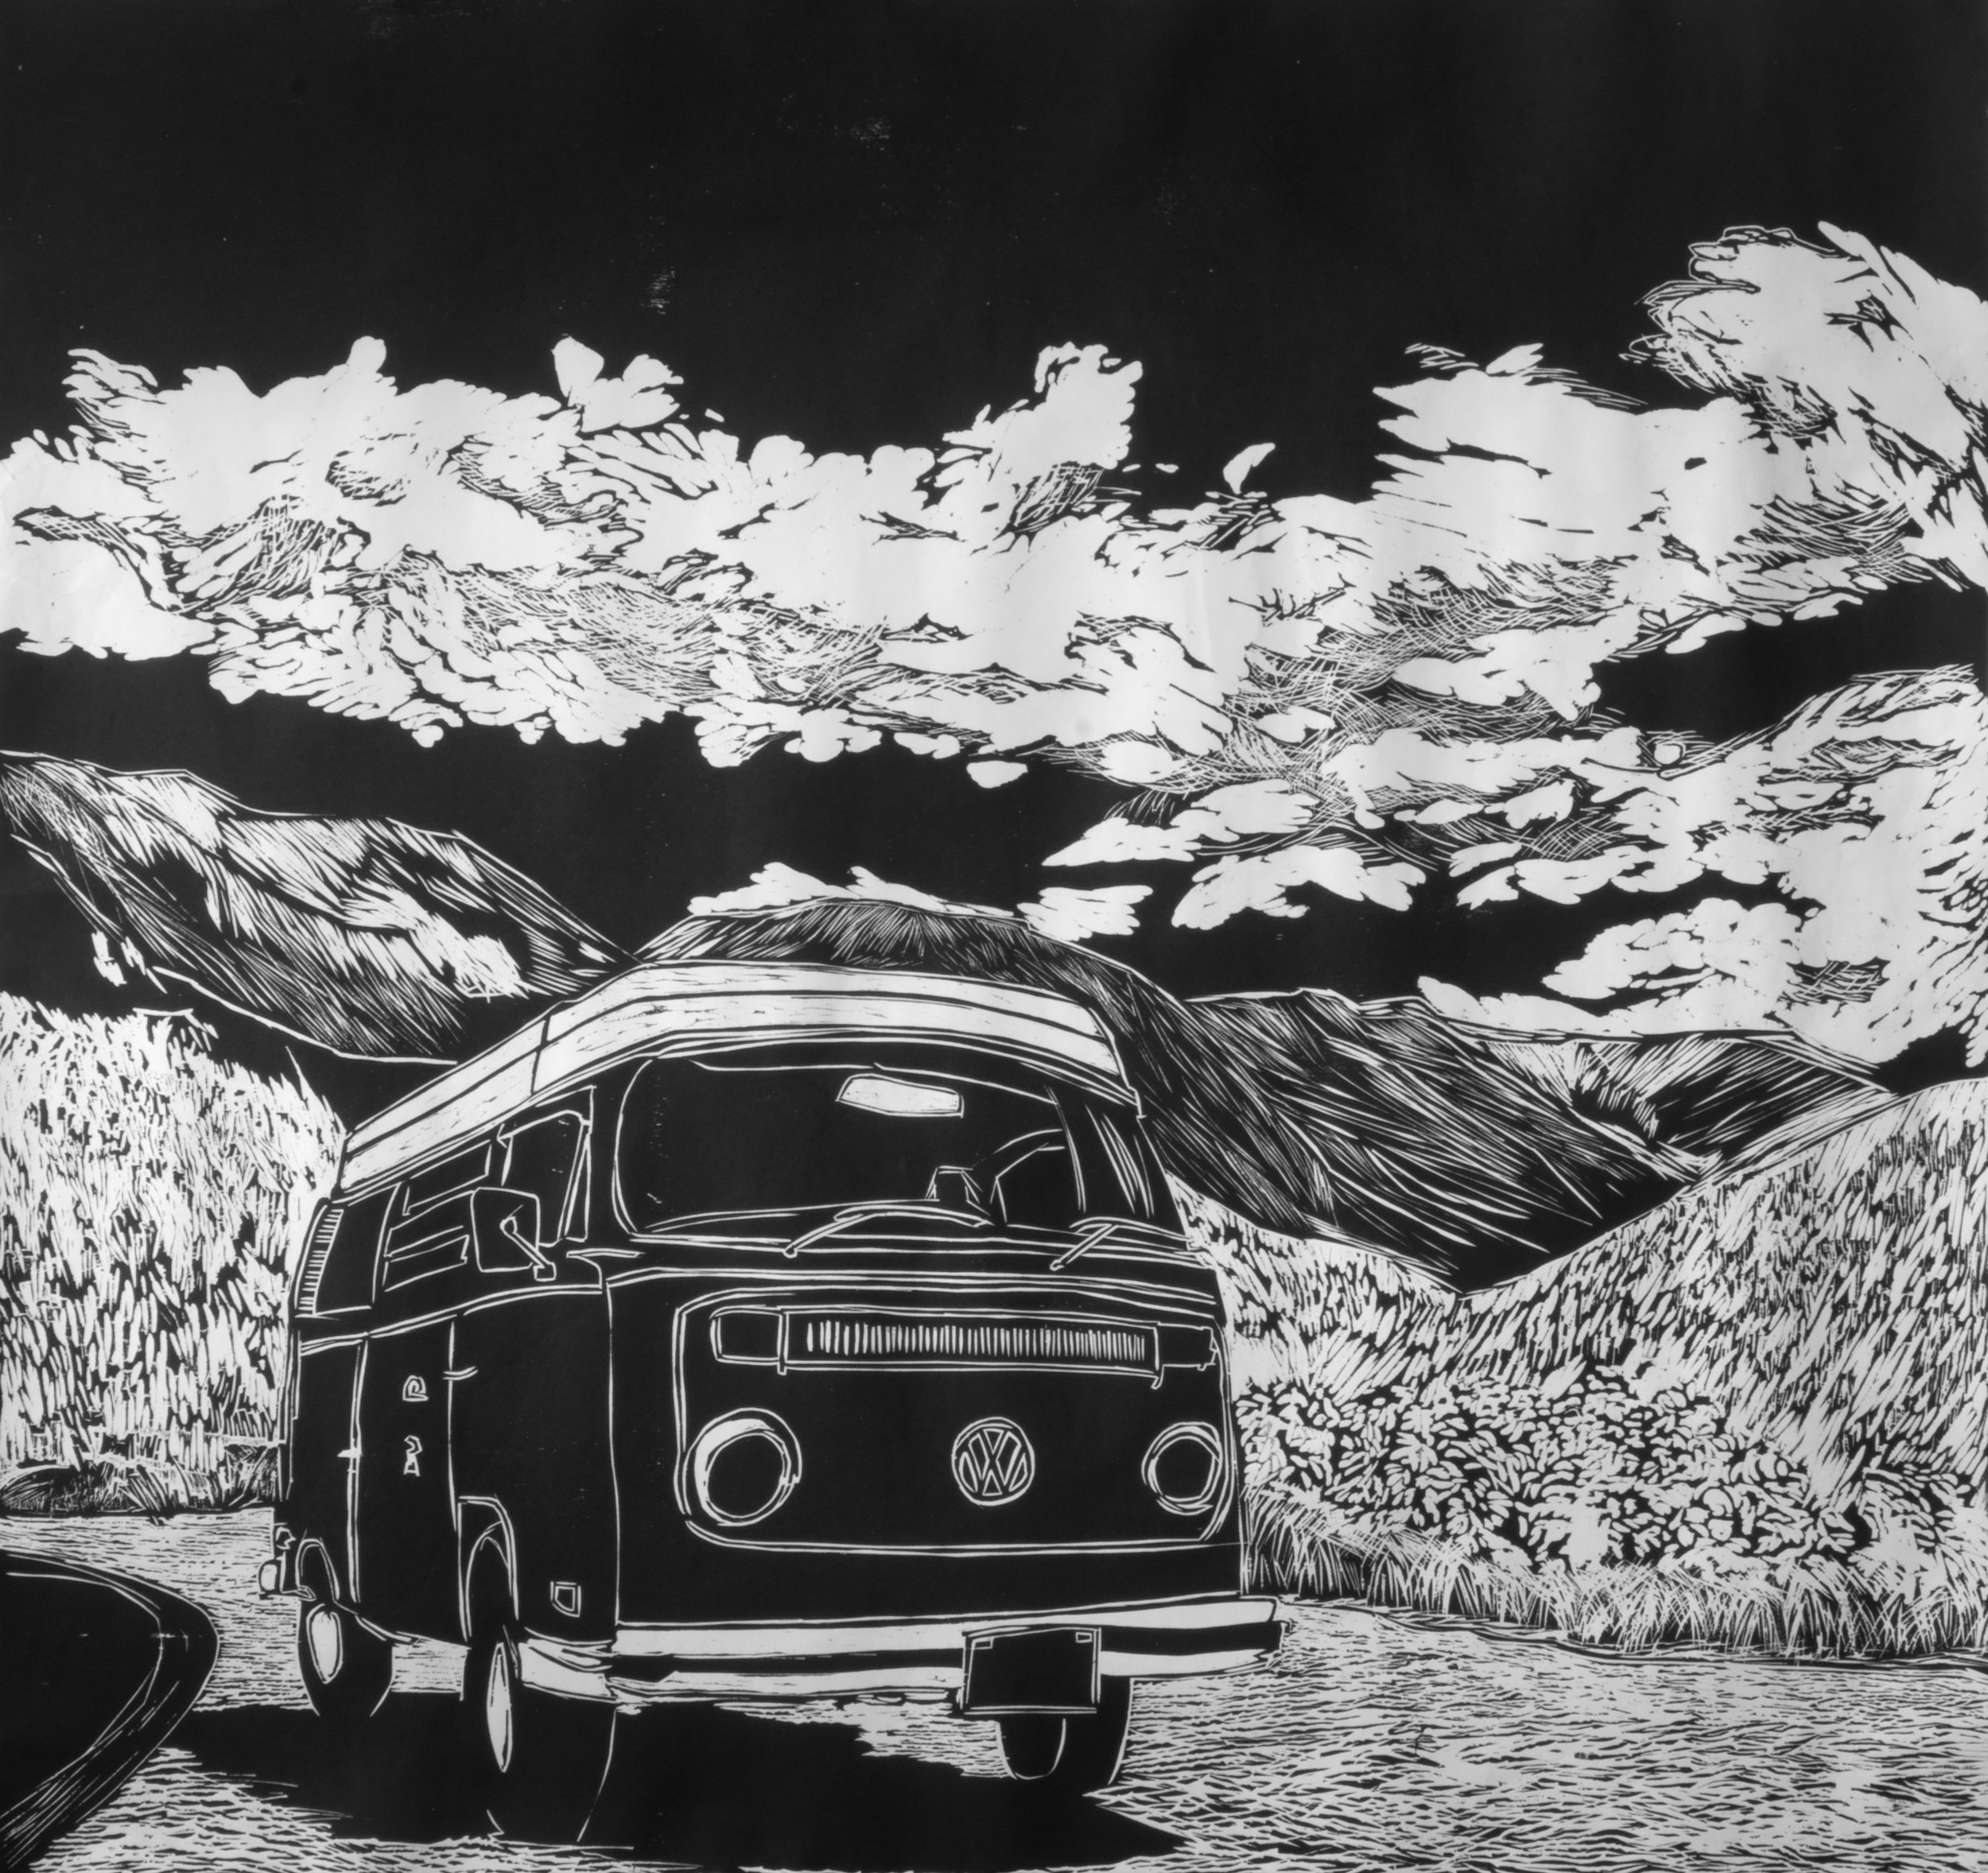 MCCLURE PASS (LEFT)   ARTIST: Sirima Sataman MEDIUM: Woodcut – Ink on Japanese paper DIMENSIONS: 46 in x 48 in | 116,84 cm x 121,92 cm EDITION: 6 PRICE: $2500 unframed (only 1 left) | $5500 framed (upon request)